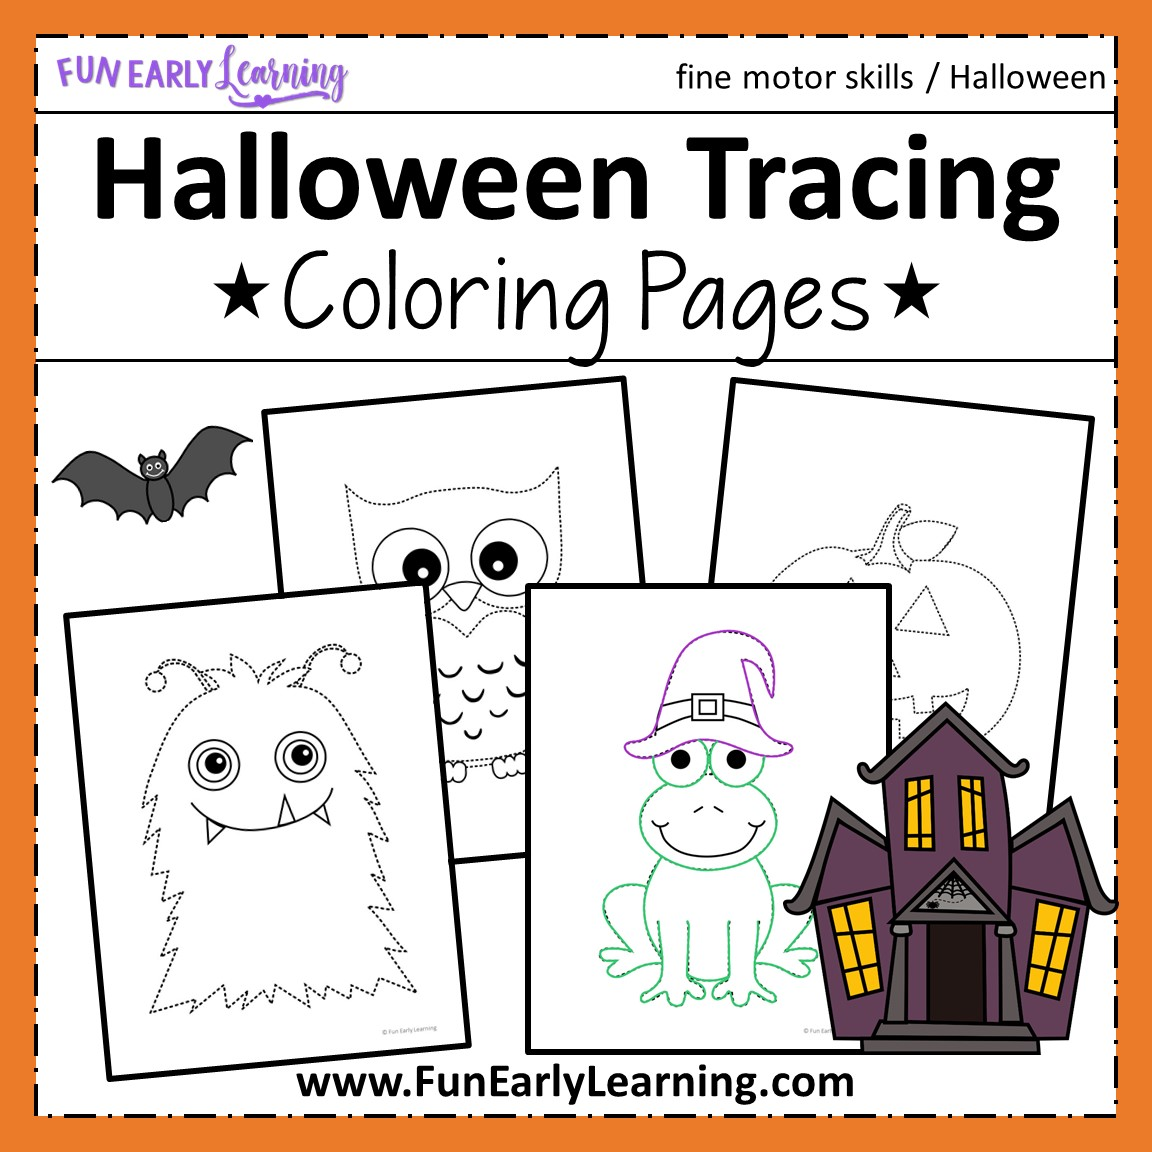 Tracing Activities For Fine Motor Skills